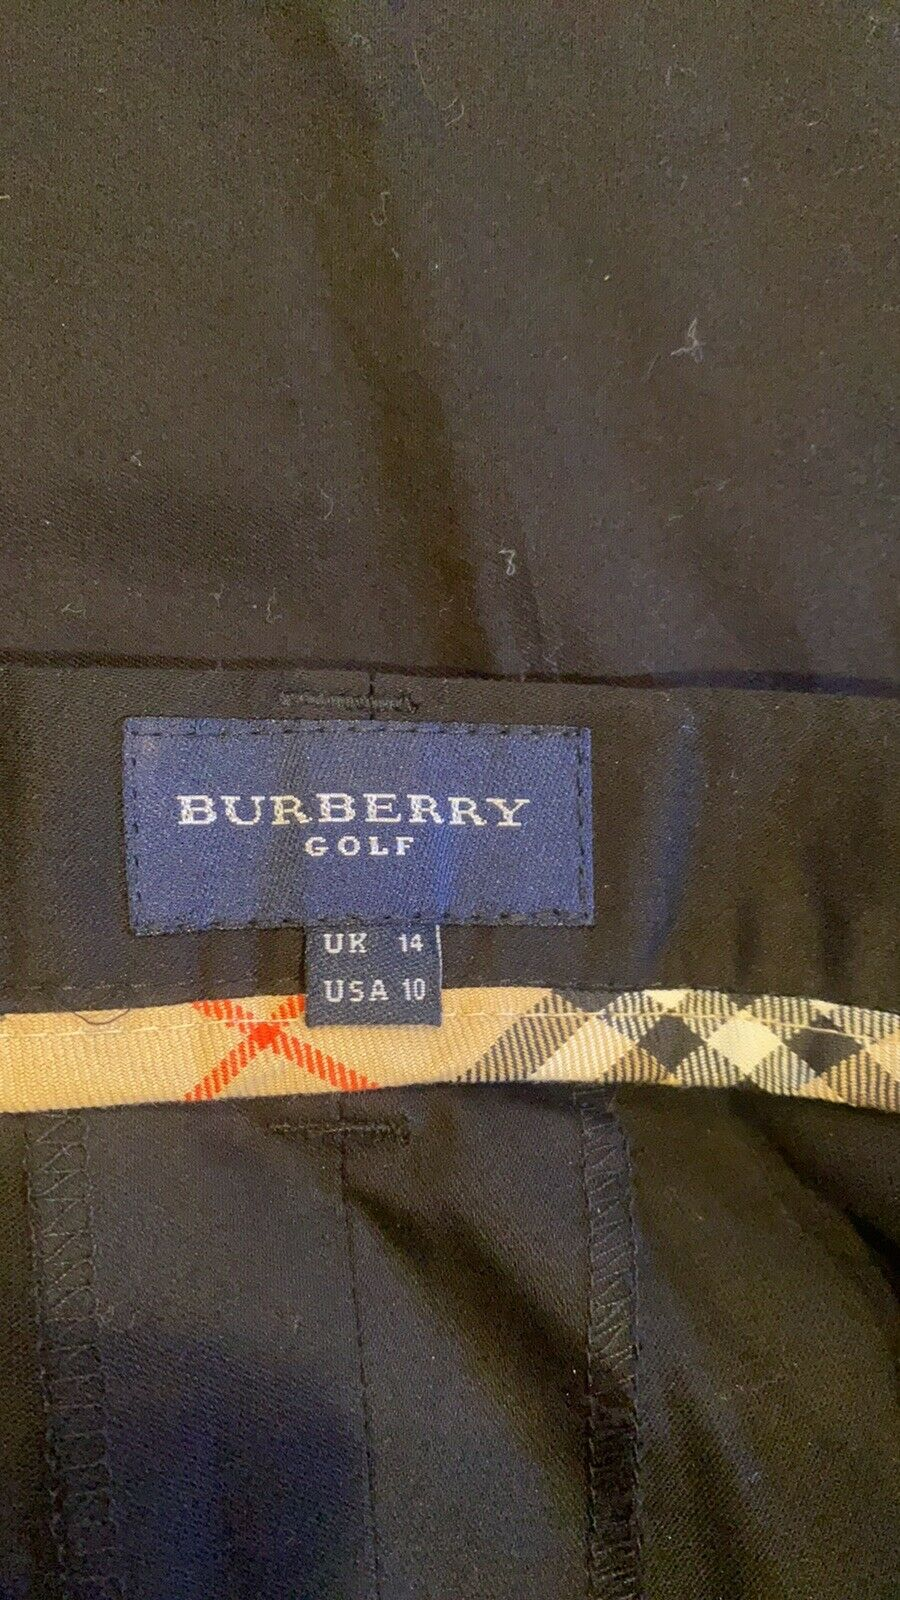 BURBERRY GOLF FABULOUS SHORTS TAILORED BLACKWITH … - image 9